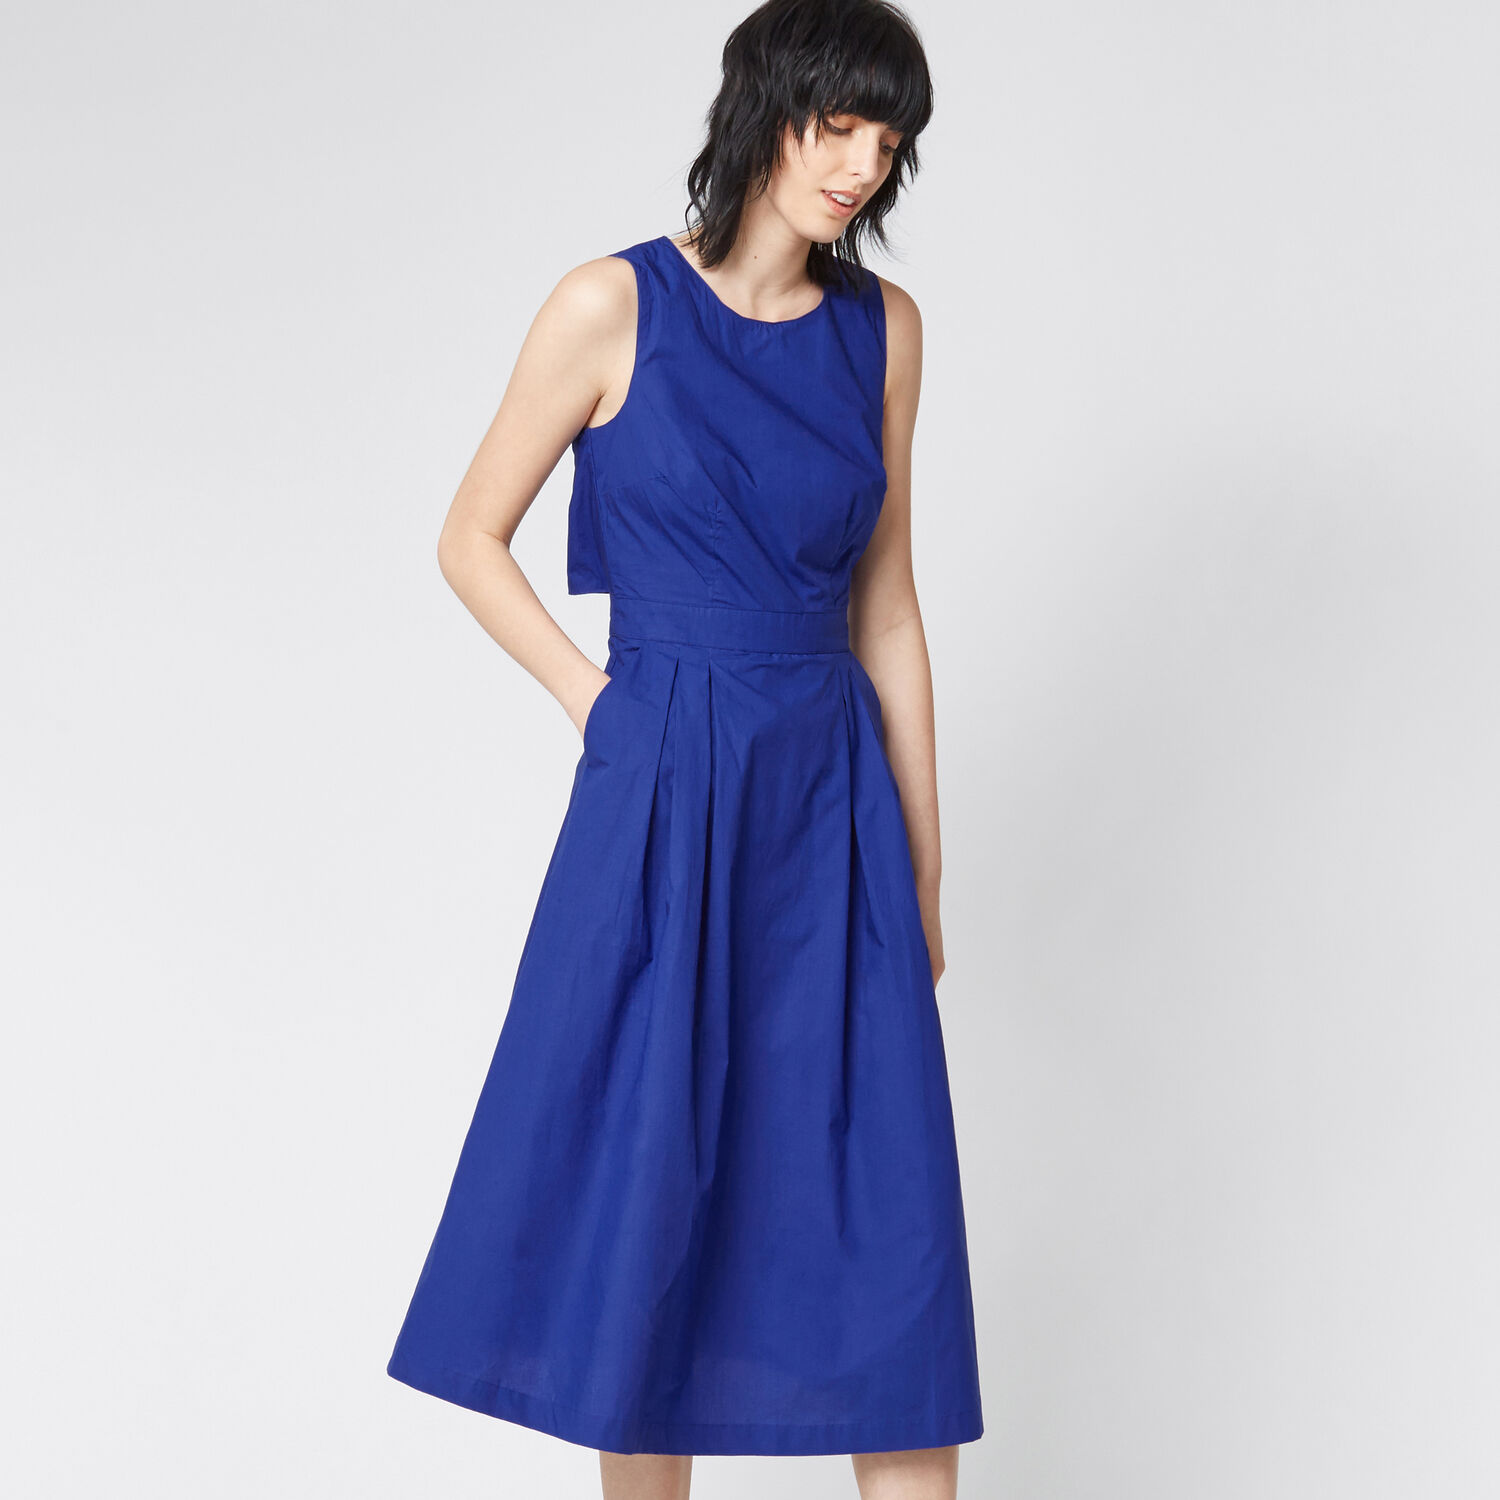 Best prices on Cotton spring dress in Women's Dresses online. Visit Bizrate to find the best deals on top brands. Read reviews on Clothing & Accessories merchants and buy with confidence.